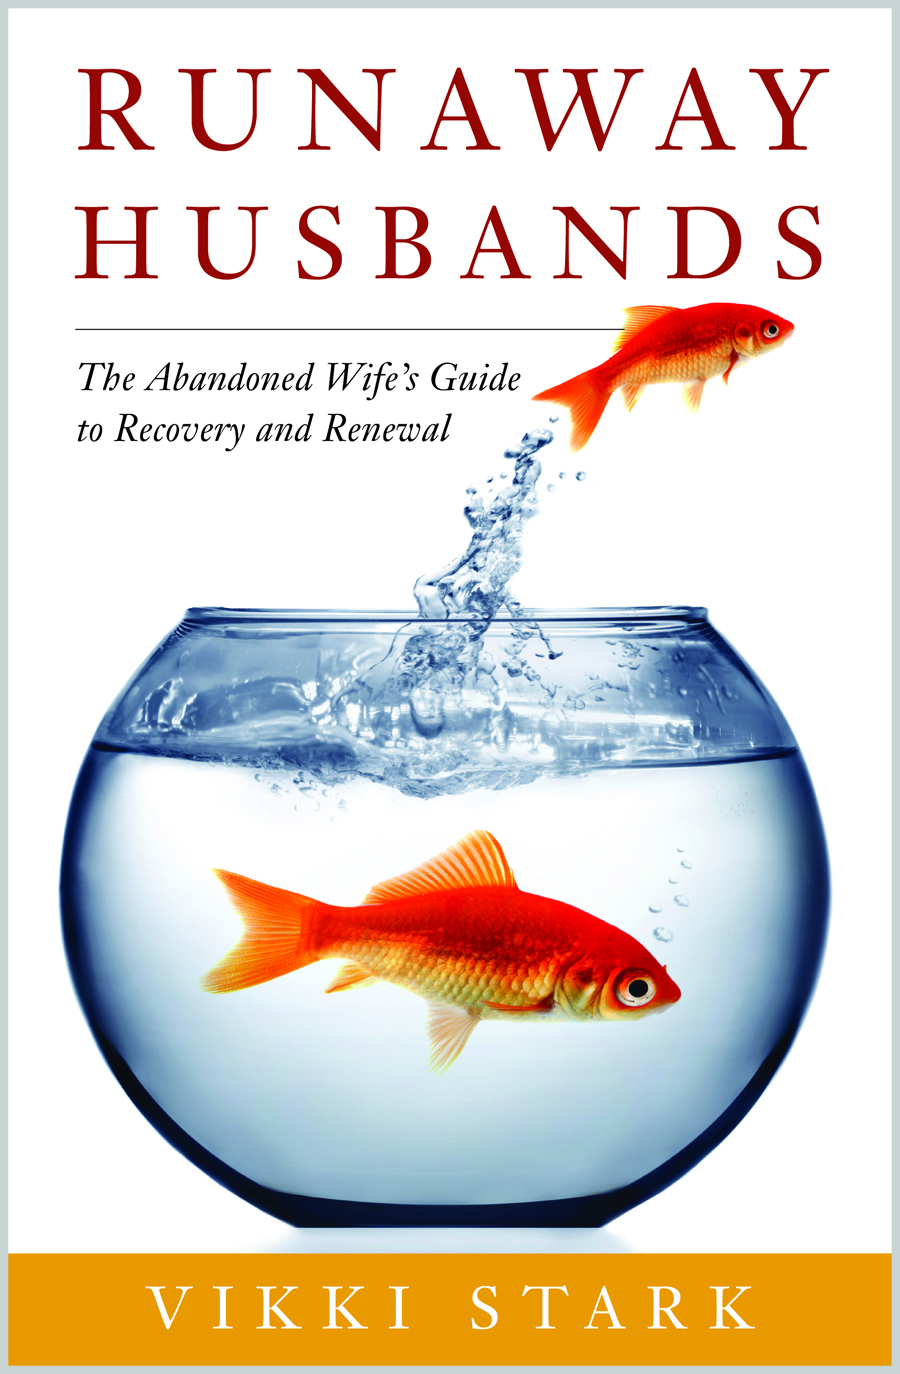 The Abandoned Wife's Guide to Recovery and Renewal.